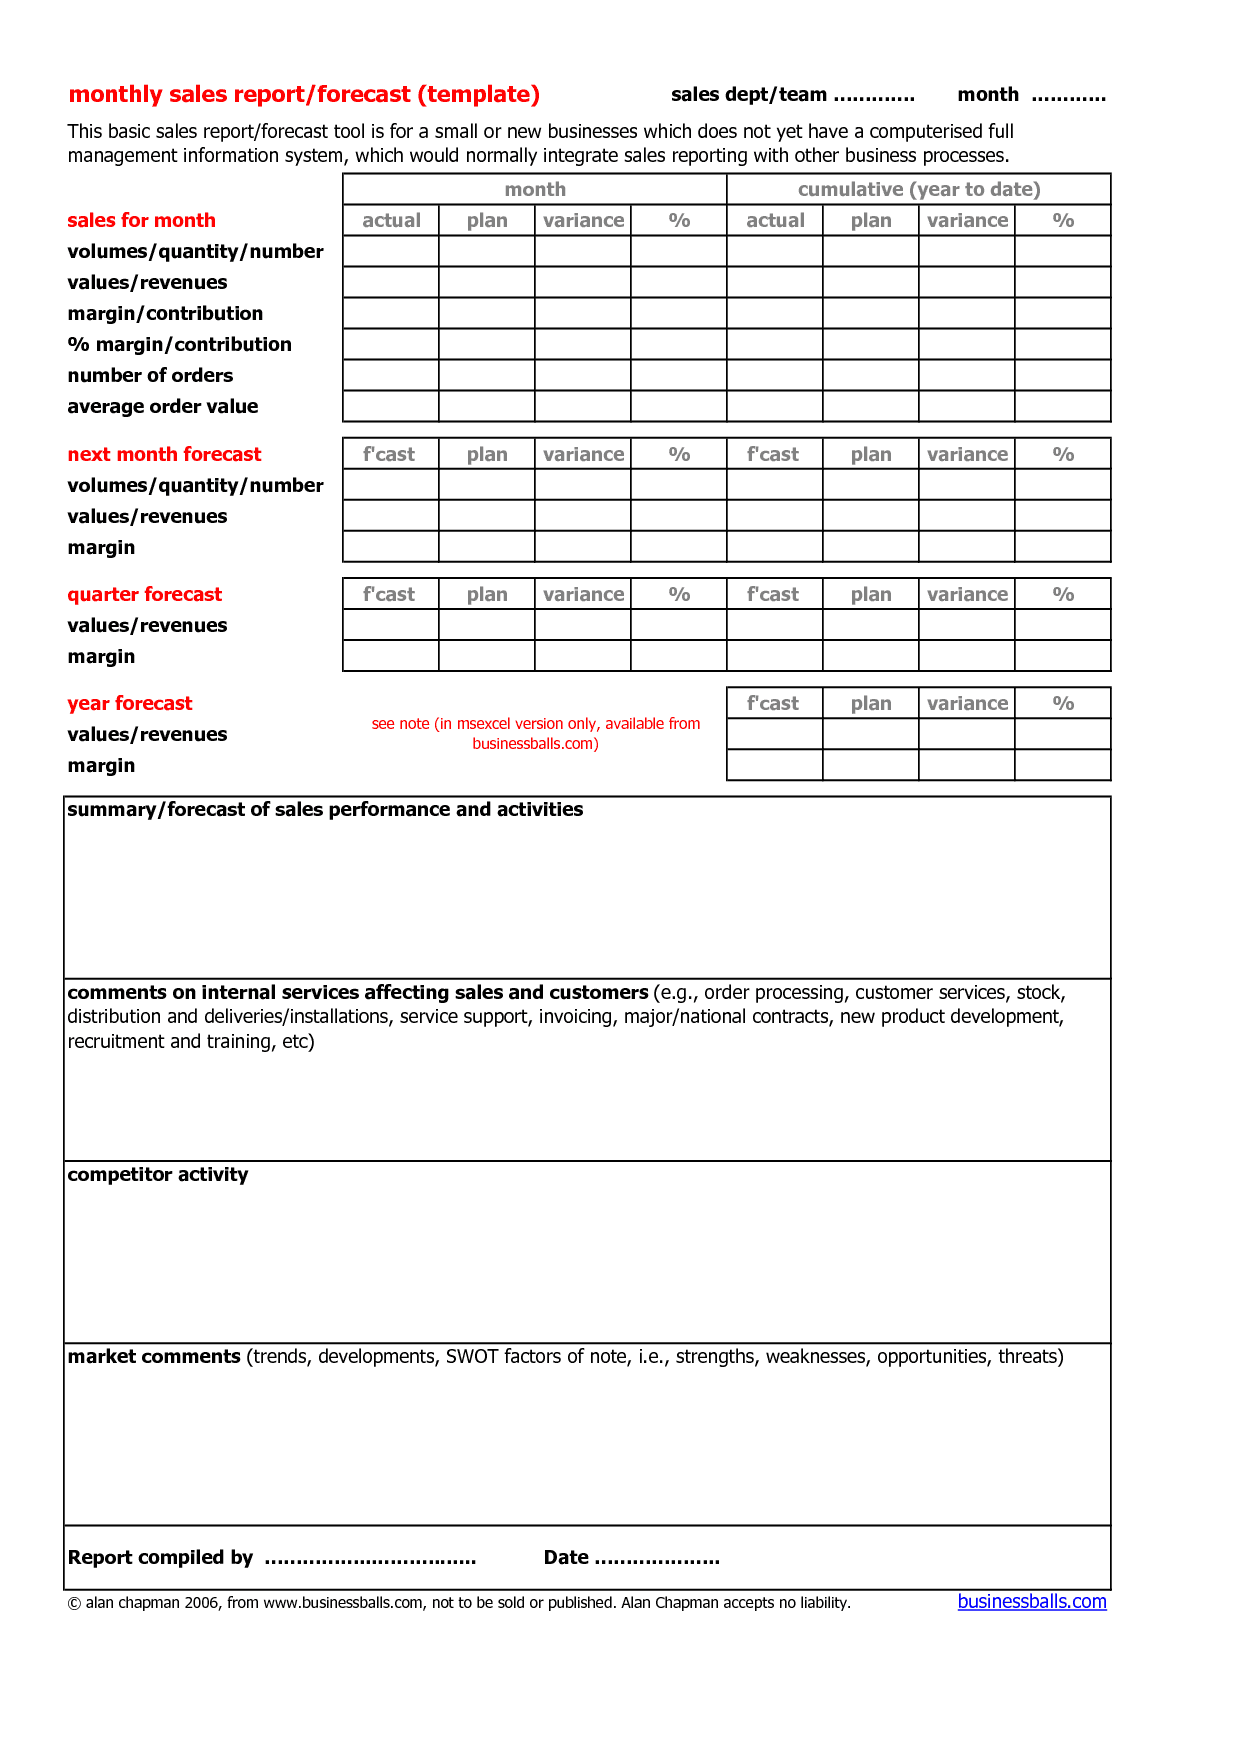 Daily Sales Report Format Excel Free Download And Daily Sales Report Format For Sales Executive